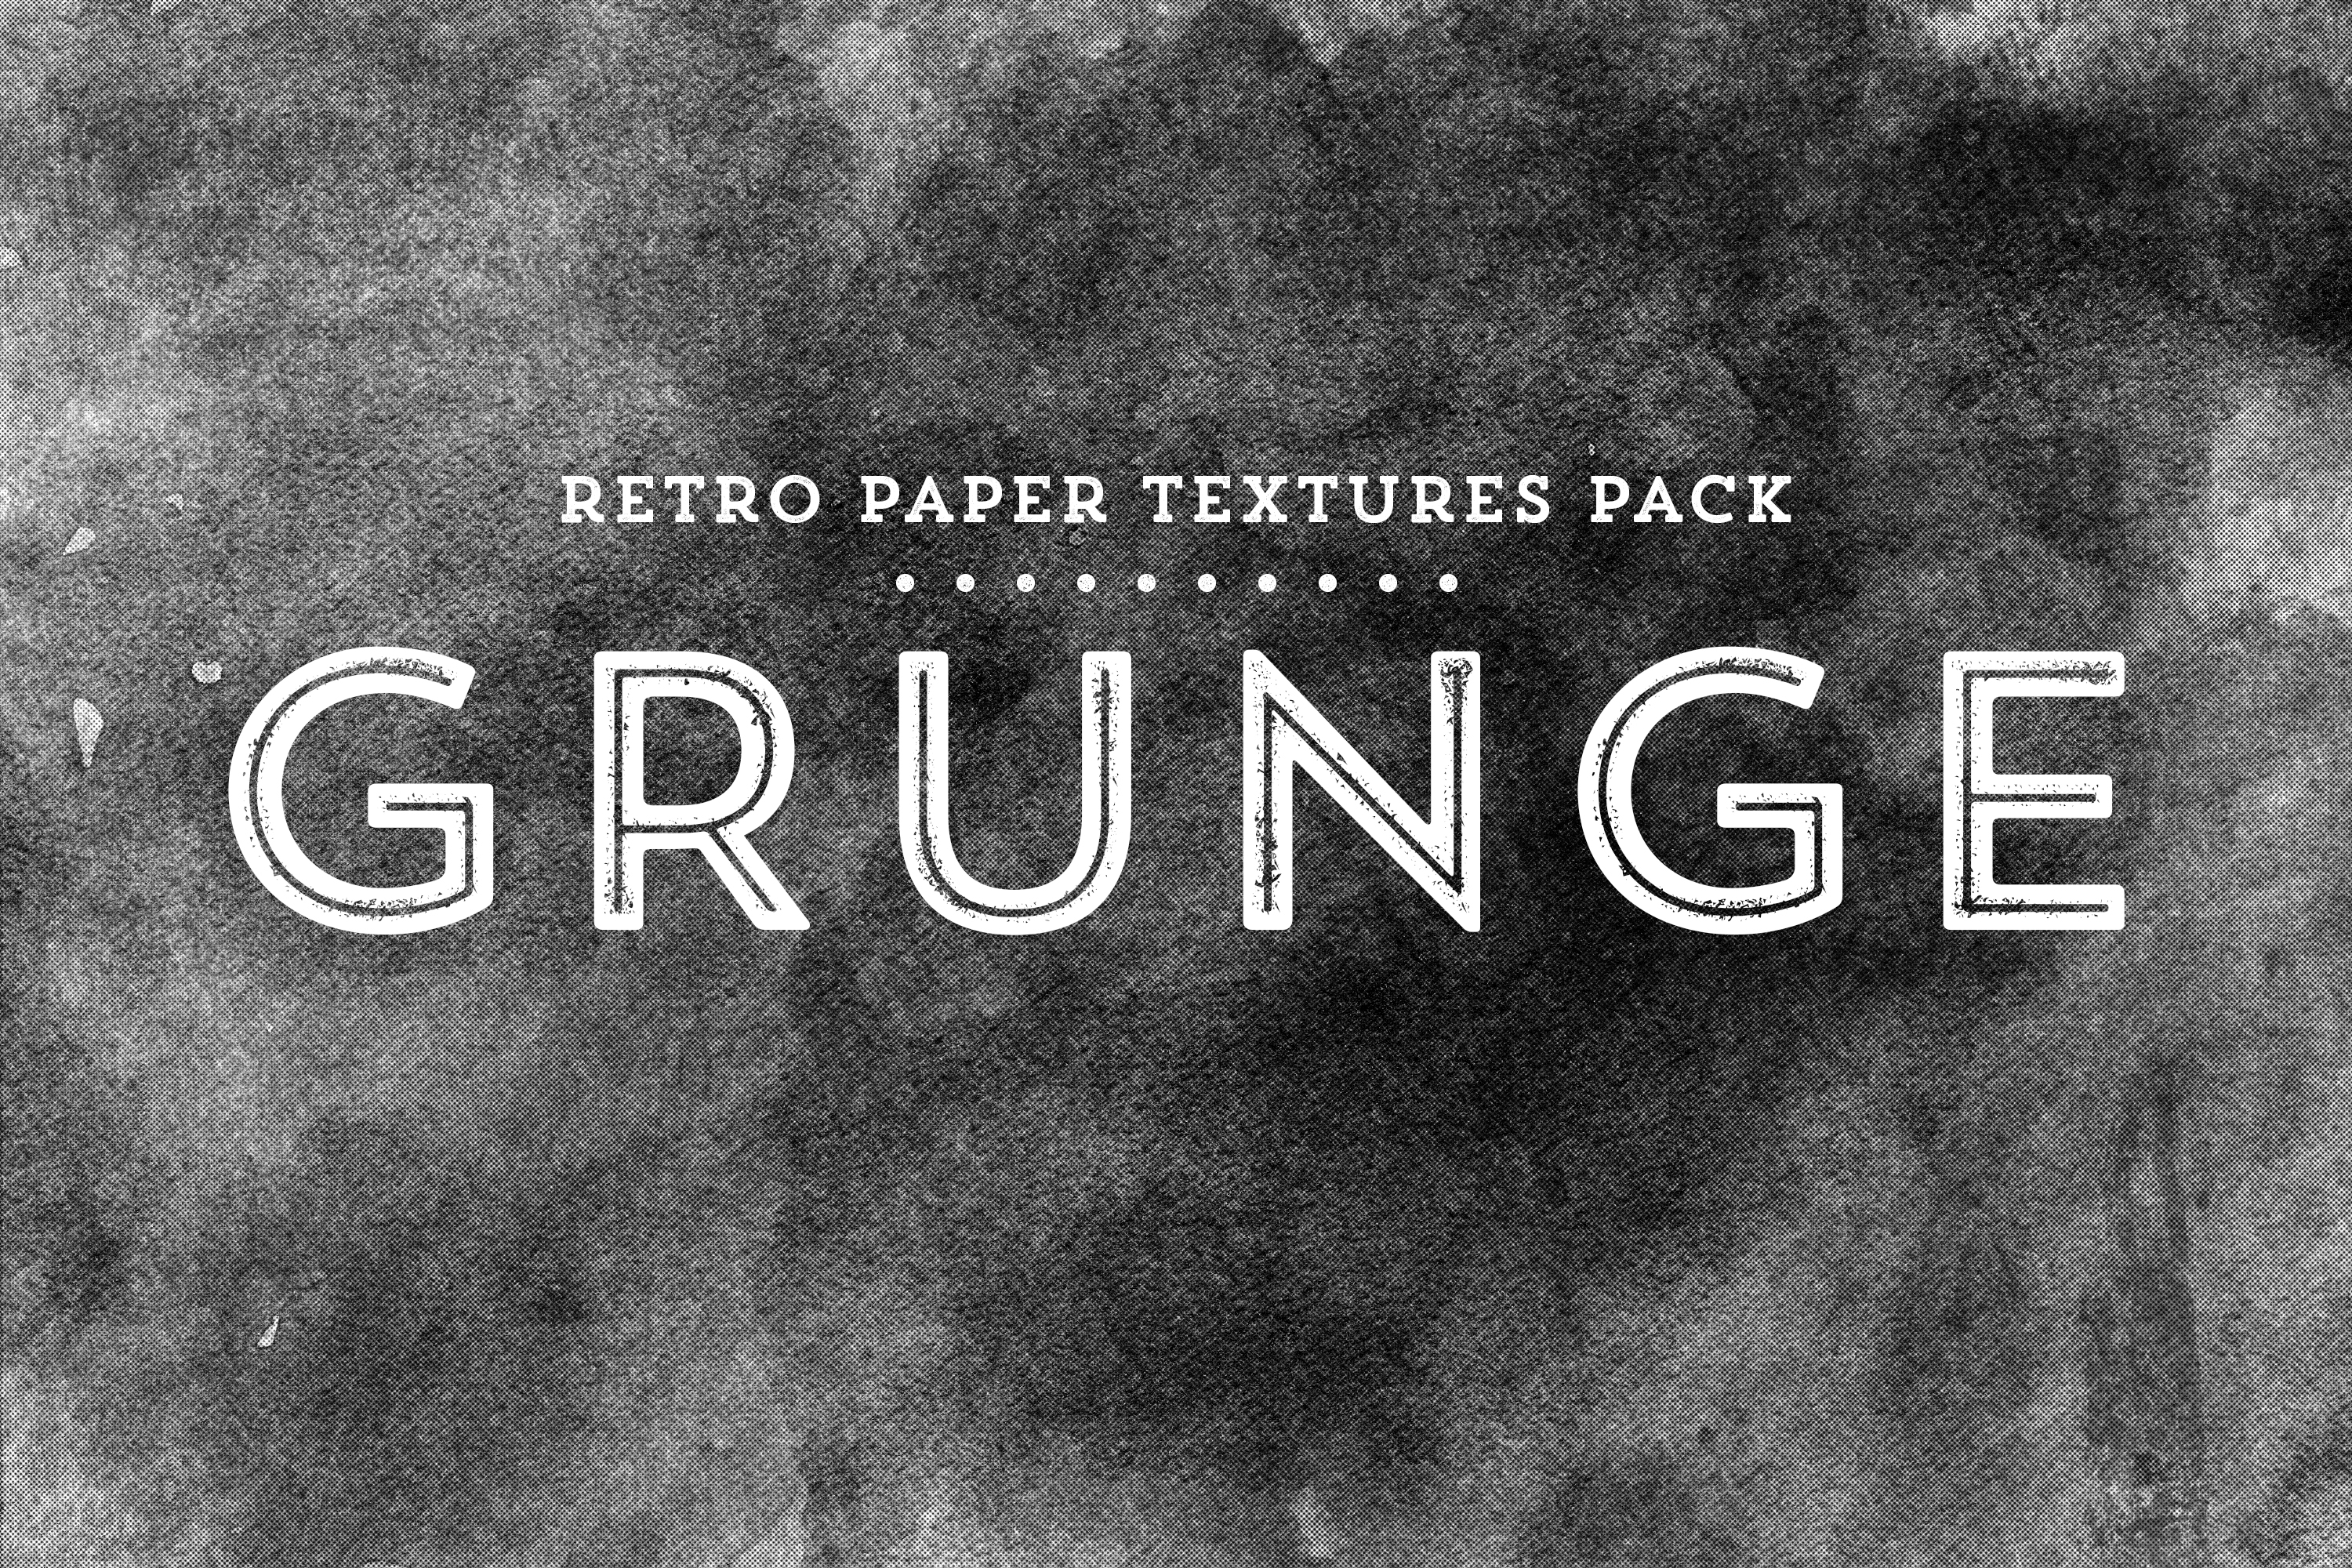 Grunge - Retro Paper Textures Pack example image 1